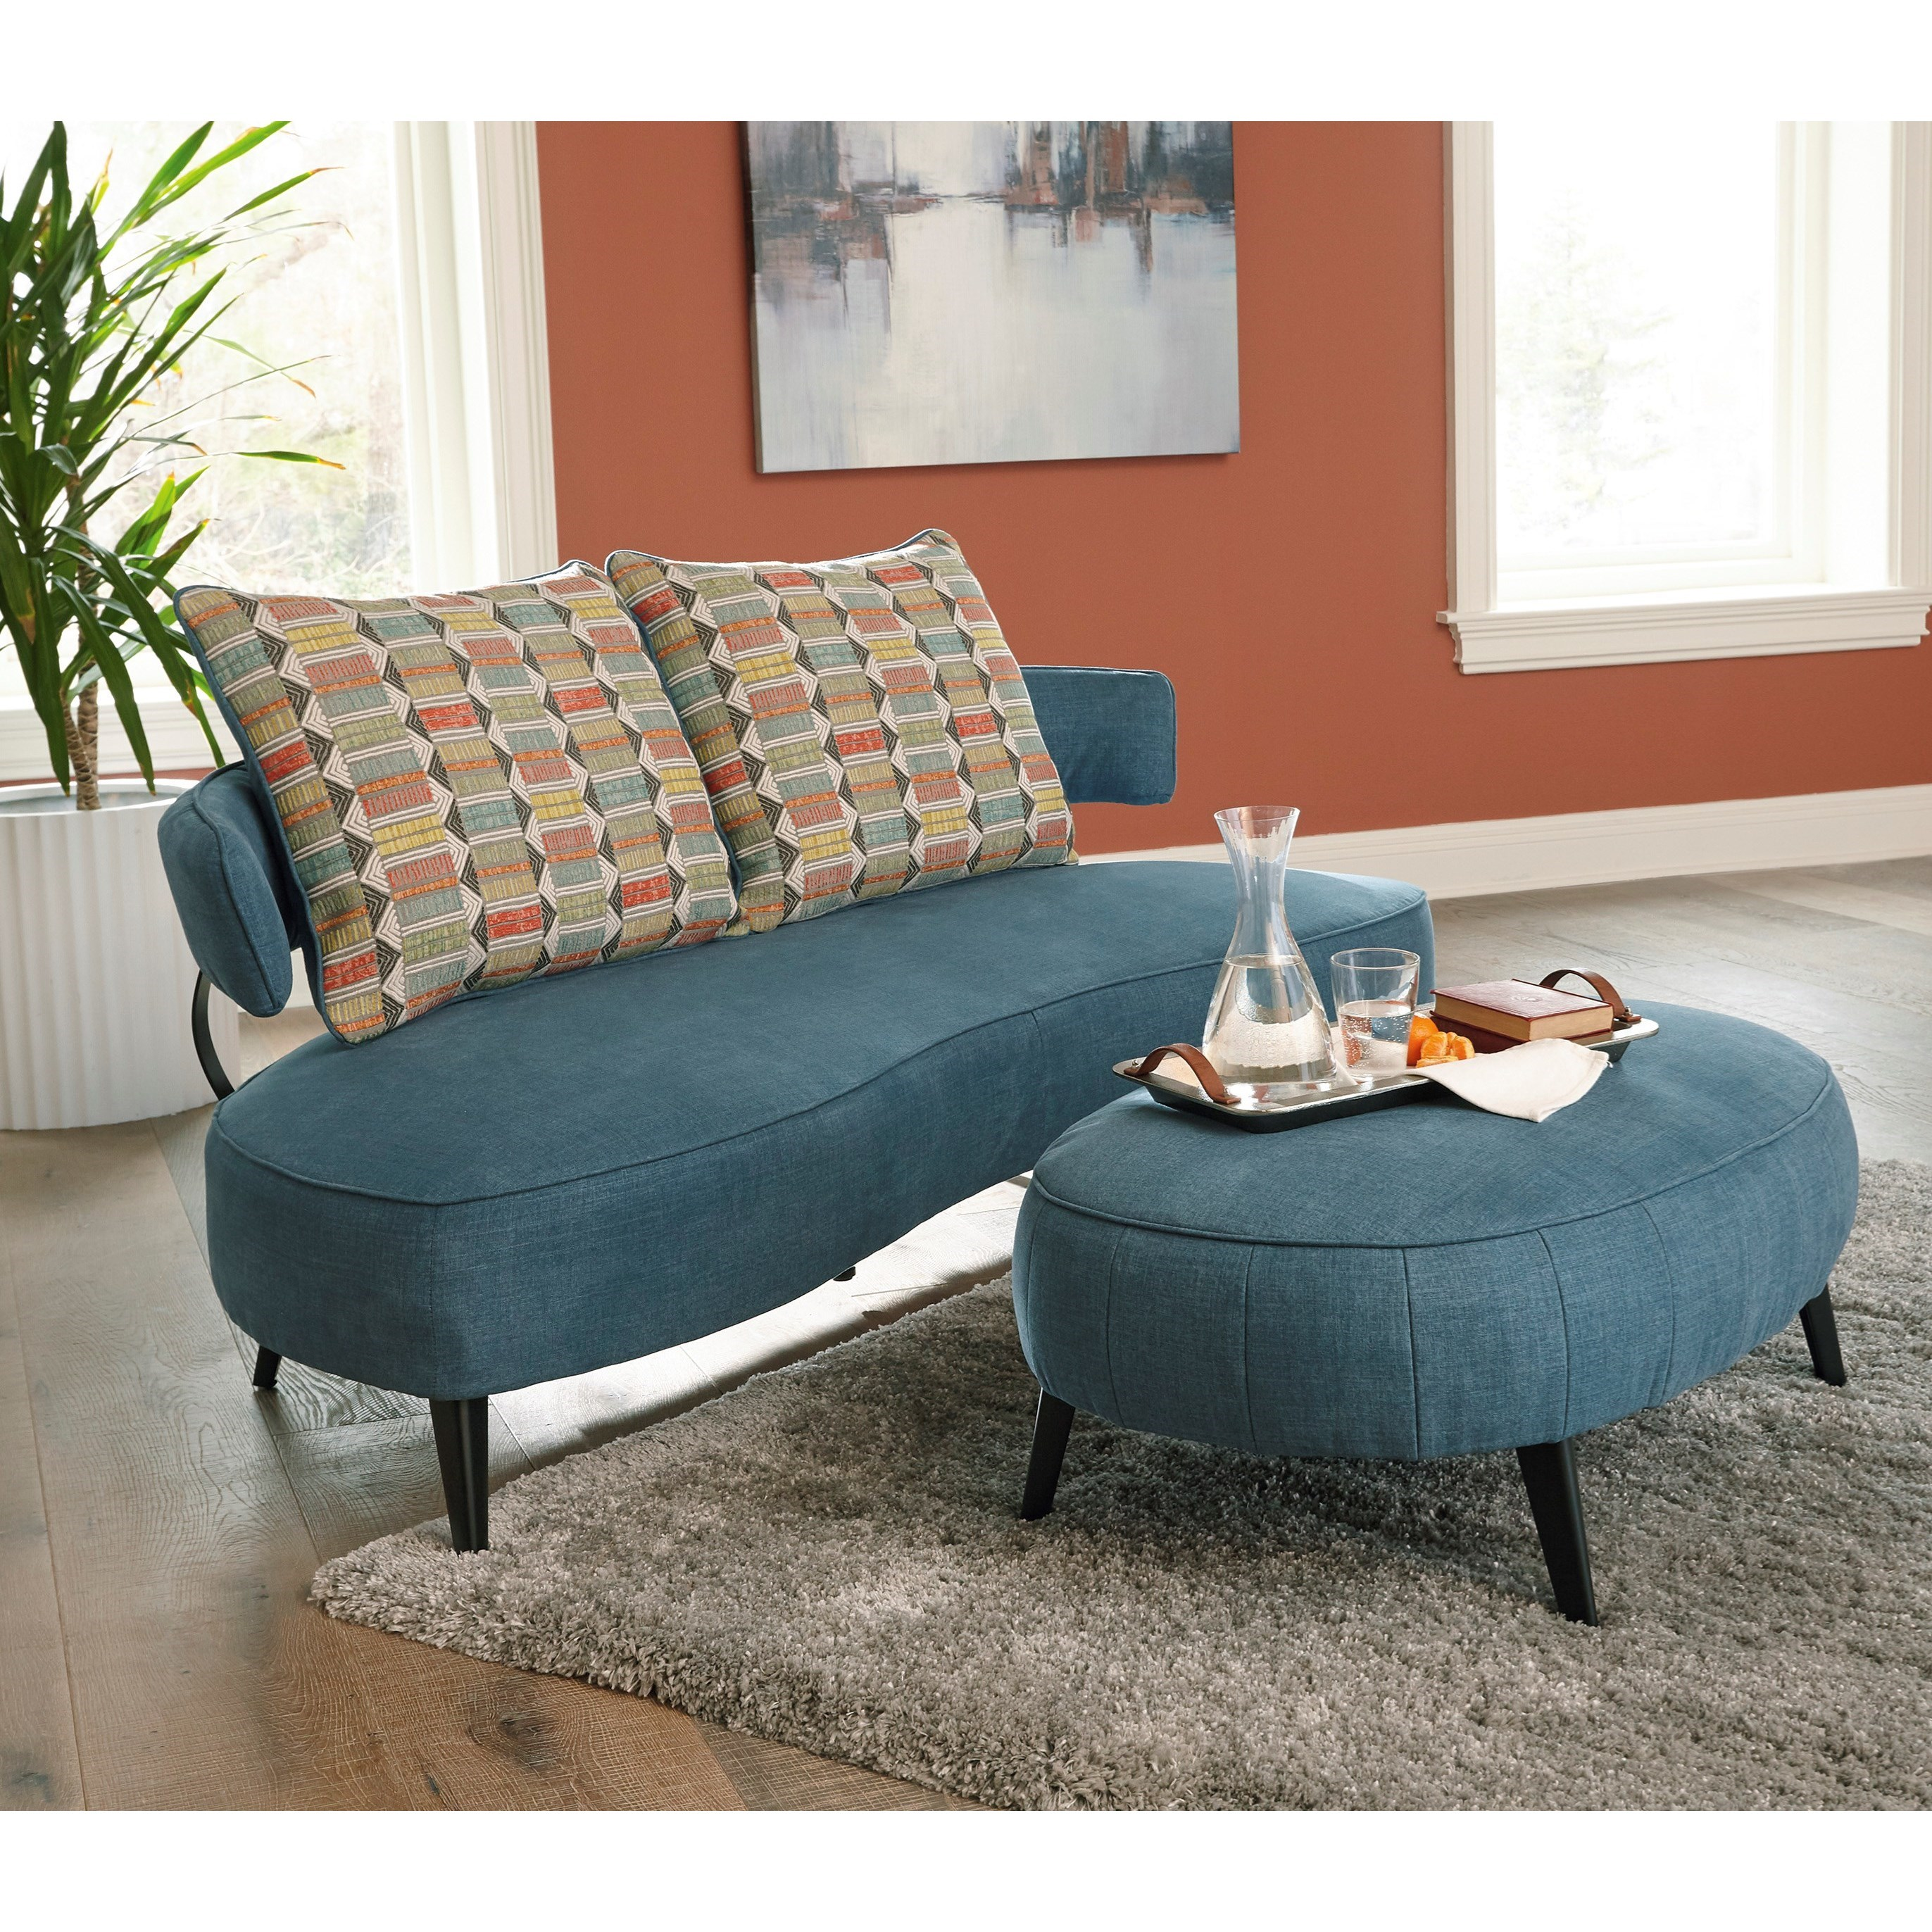 Hollyann Living Room Group by Signature at Walker's Furniture